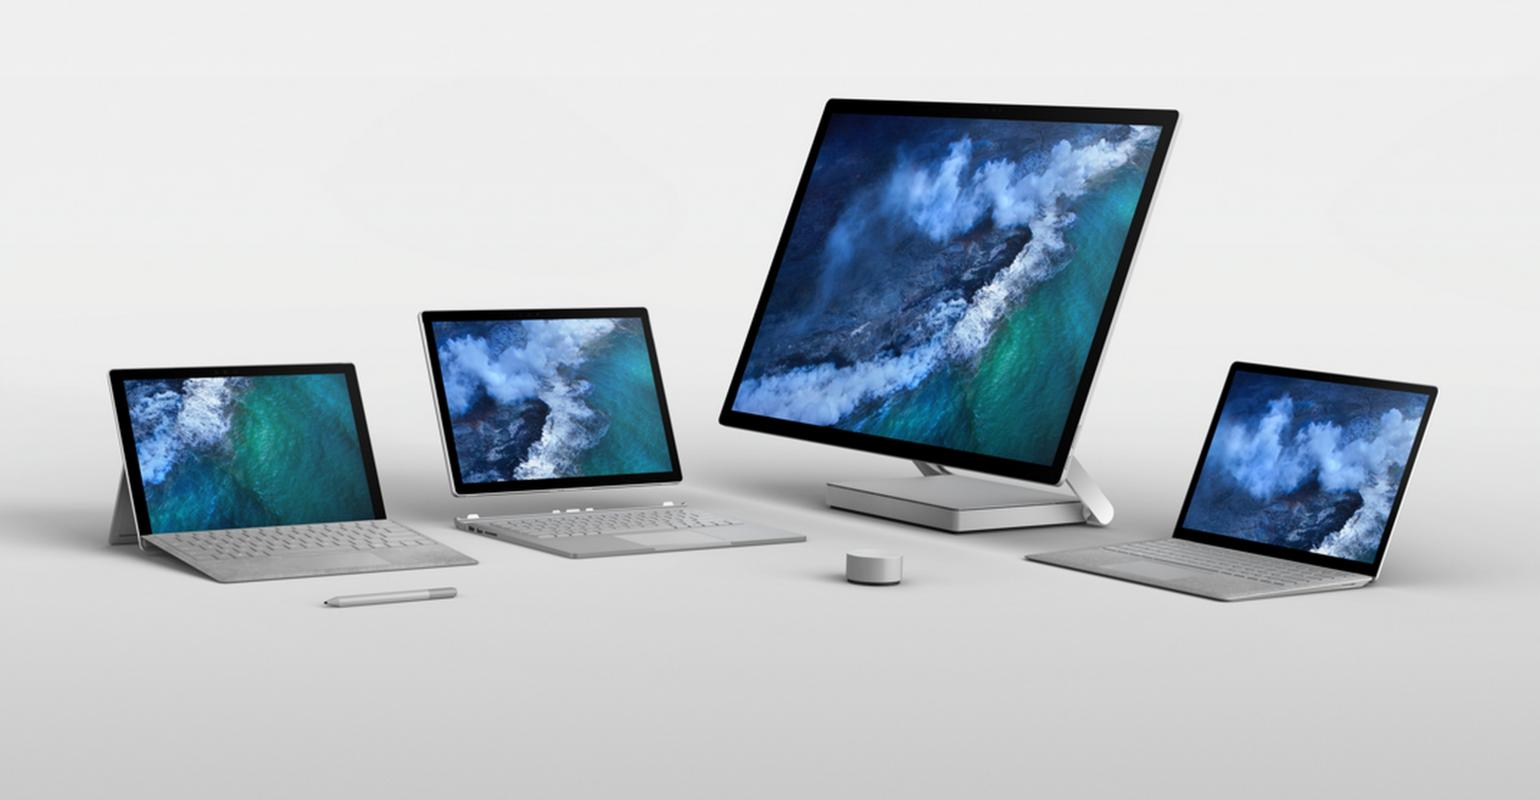 Microsoft Updates Surface Tools for IT with Support for